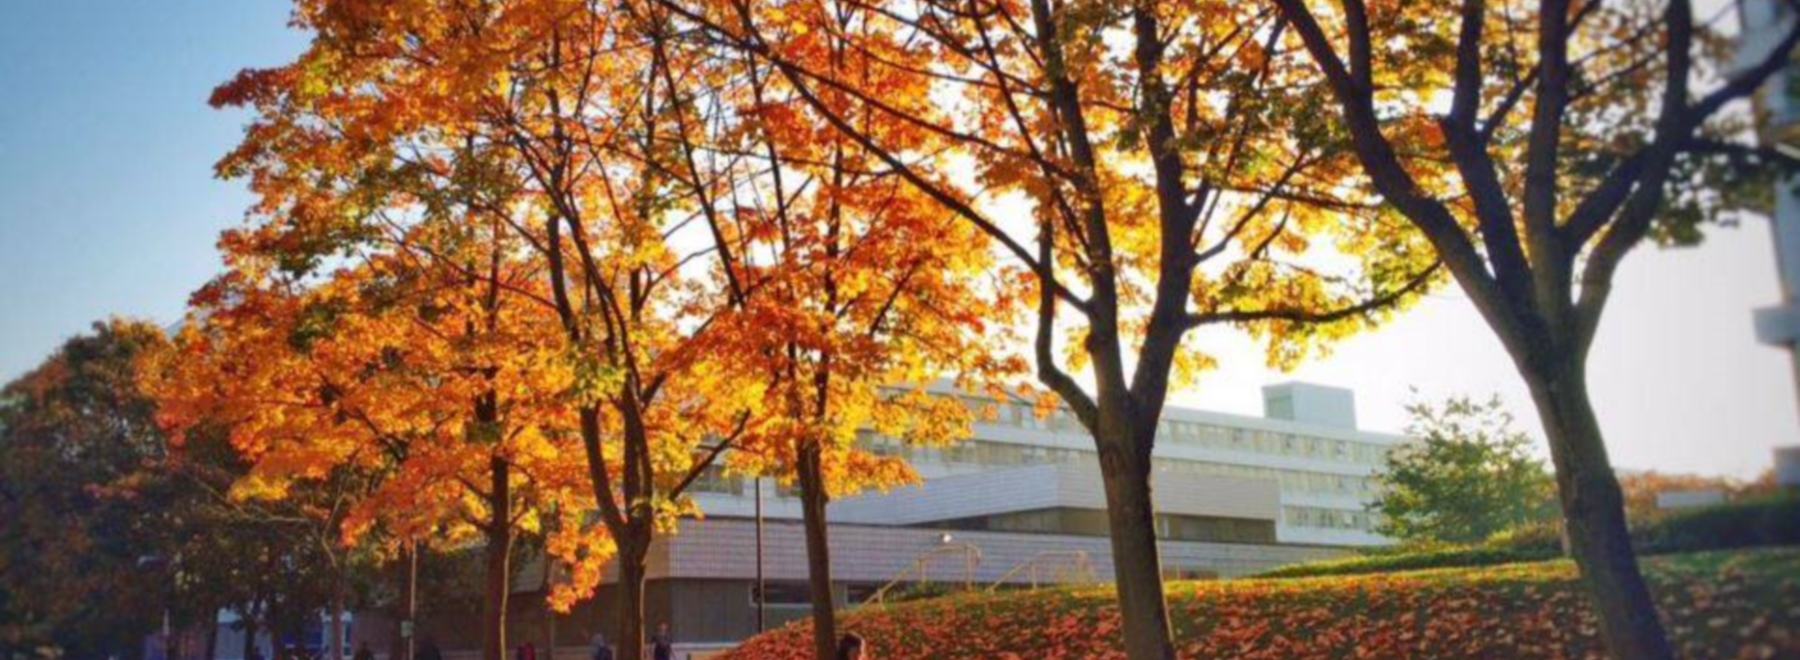 University of Warwick header